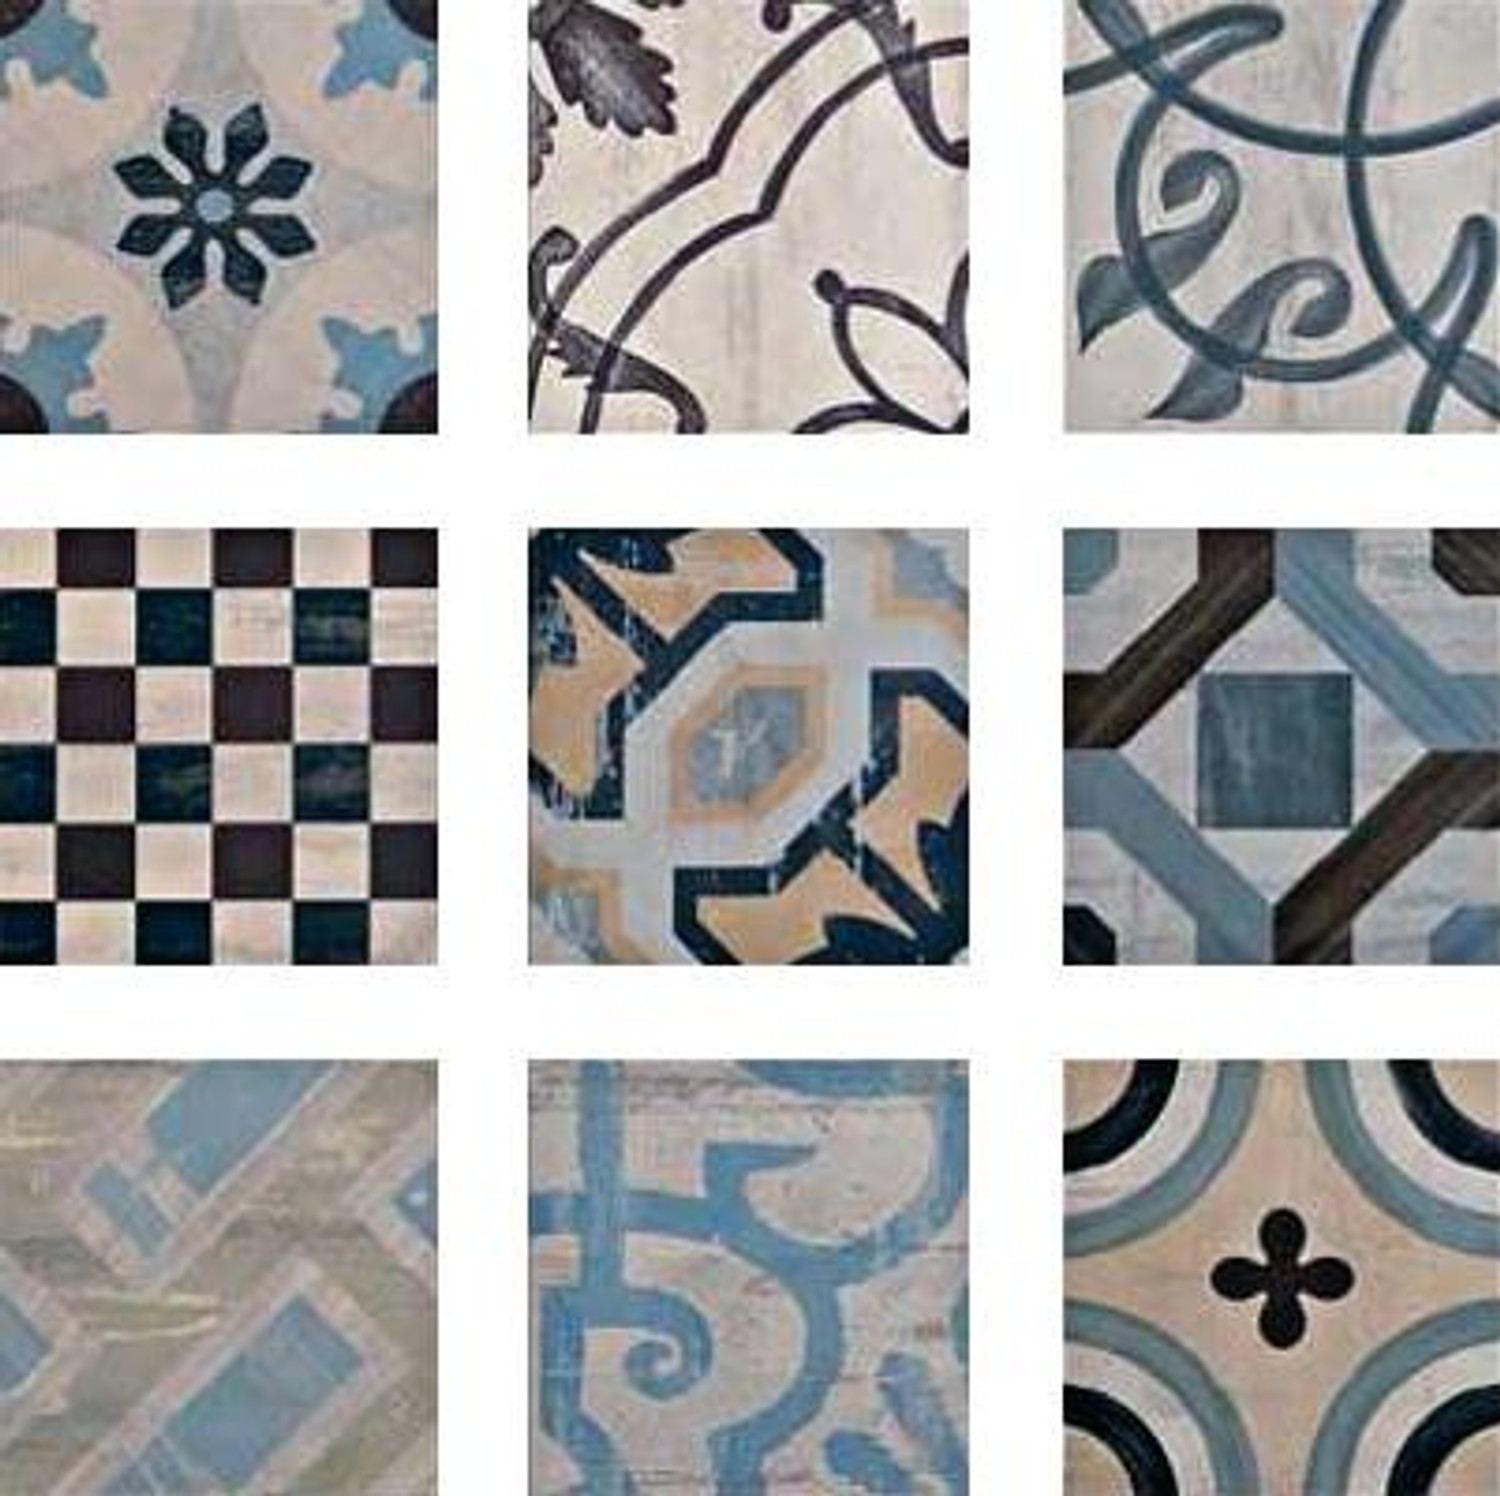 Floor Tile Wall Tile Retro Tile Cementina Color Mix 20x20 cm– Bild 3